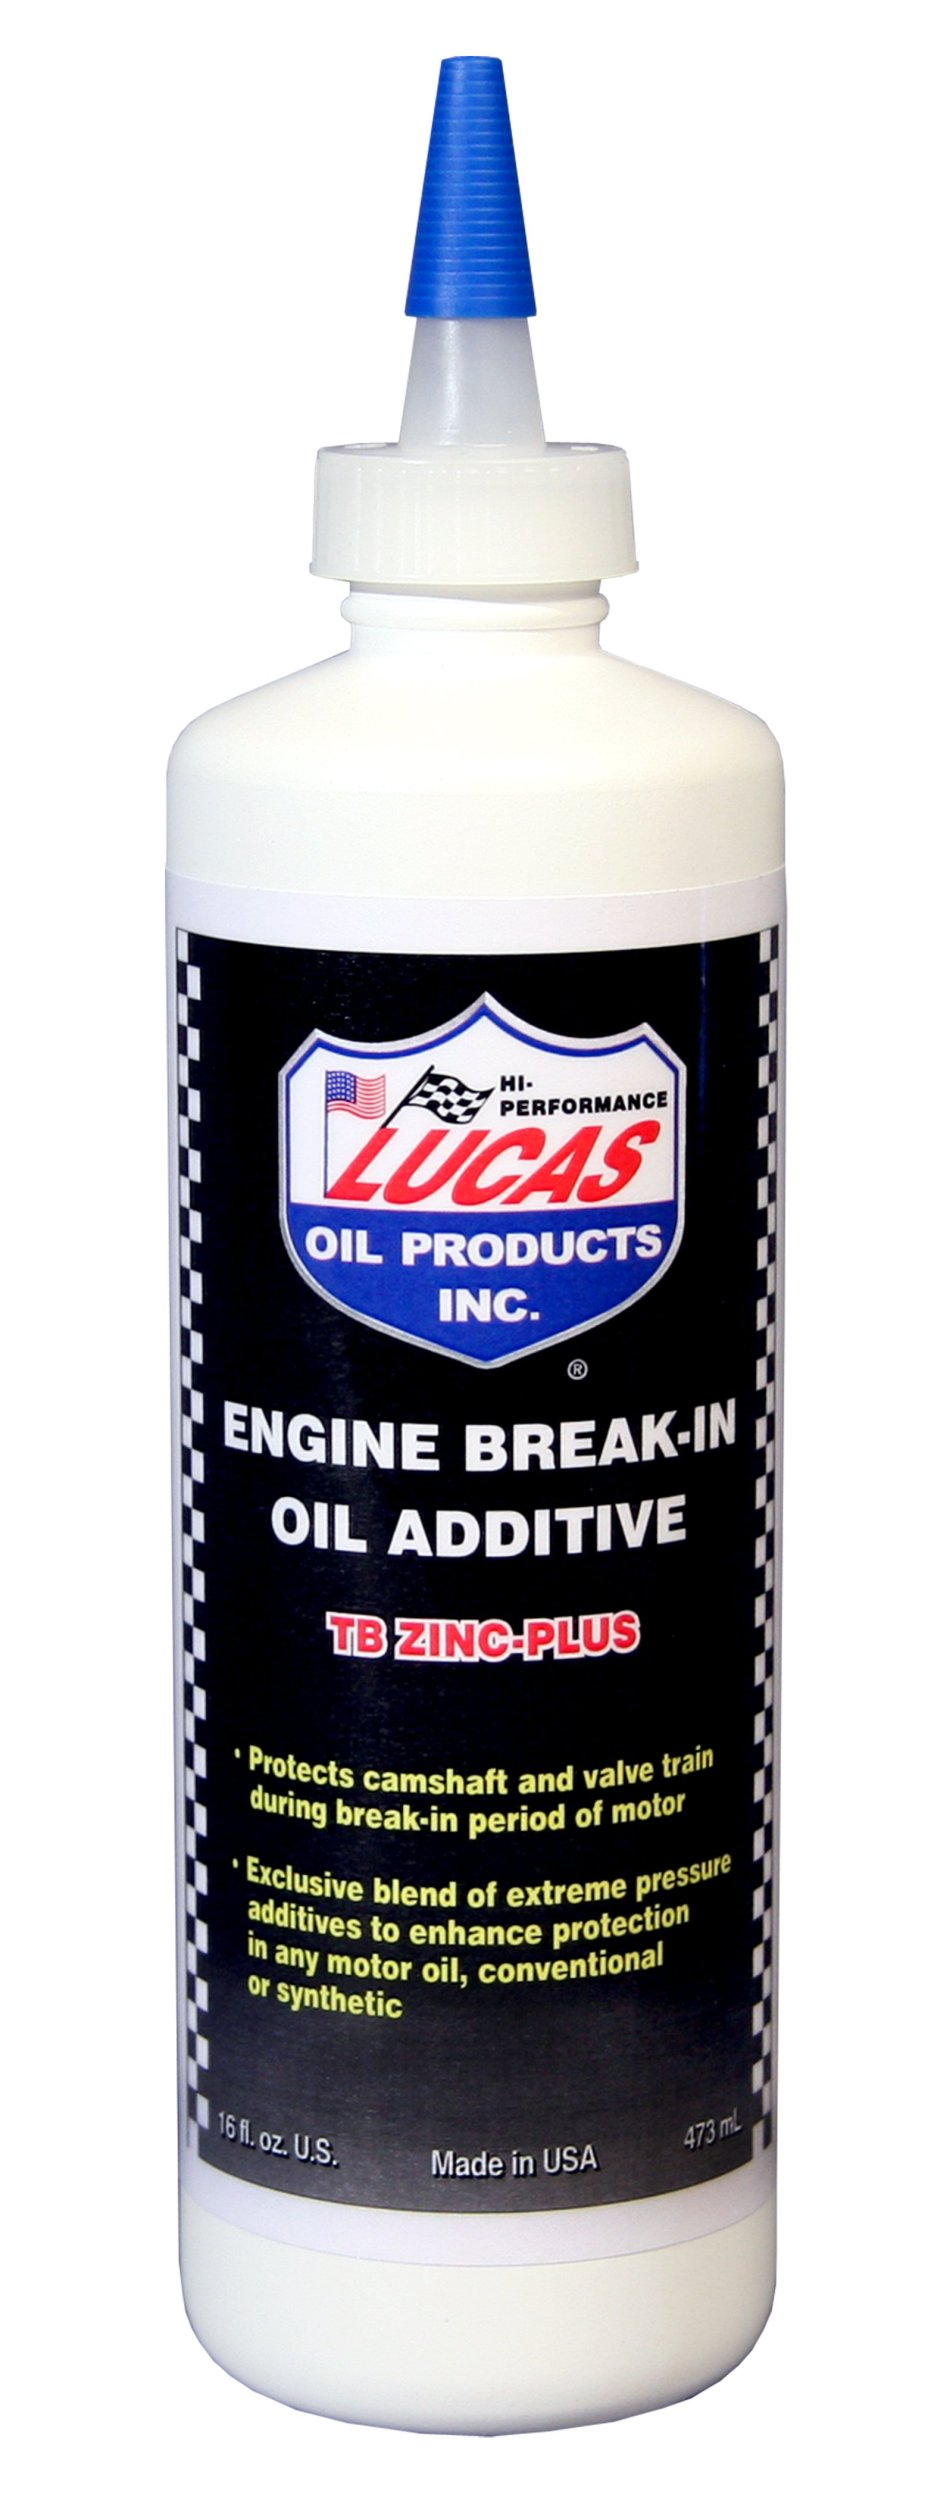 Lucas Oil 10063-PK12 Engine Break-In Oil Additive - TB Zinc Plus - 16 oz. - Pack of 12